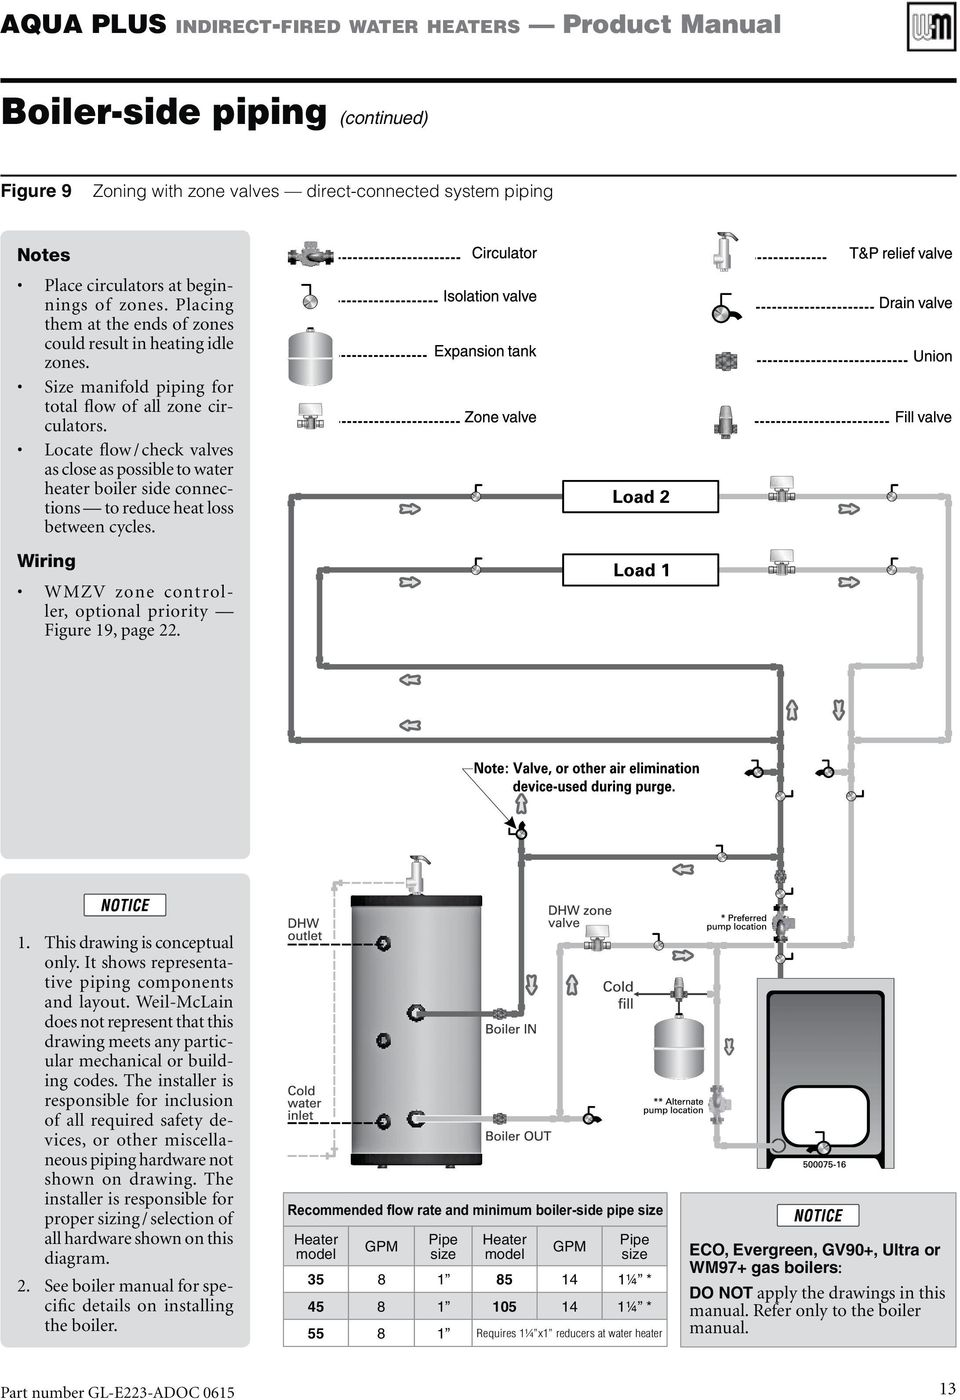 Indirect Fired Water Heaters Pdf Weil Mclain Boiler Schematic Diagram Locate Flow Check Valves As Close Possible To Heater Side Connections